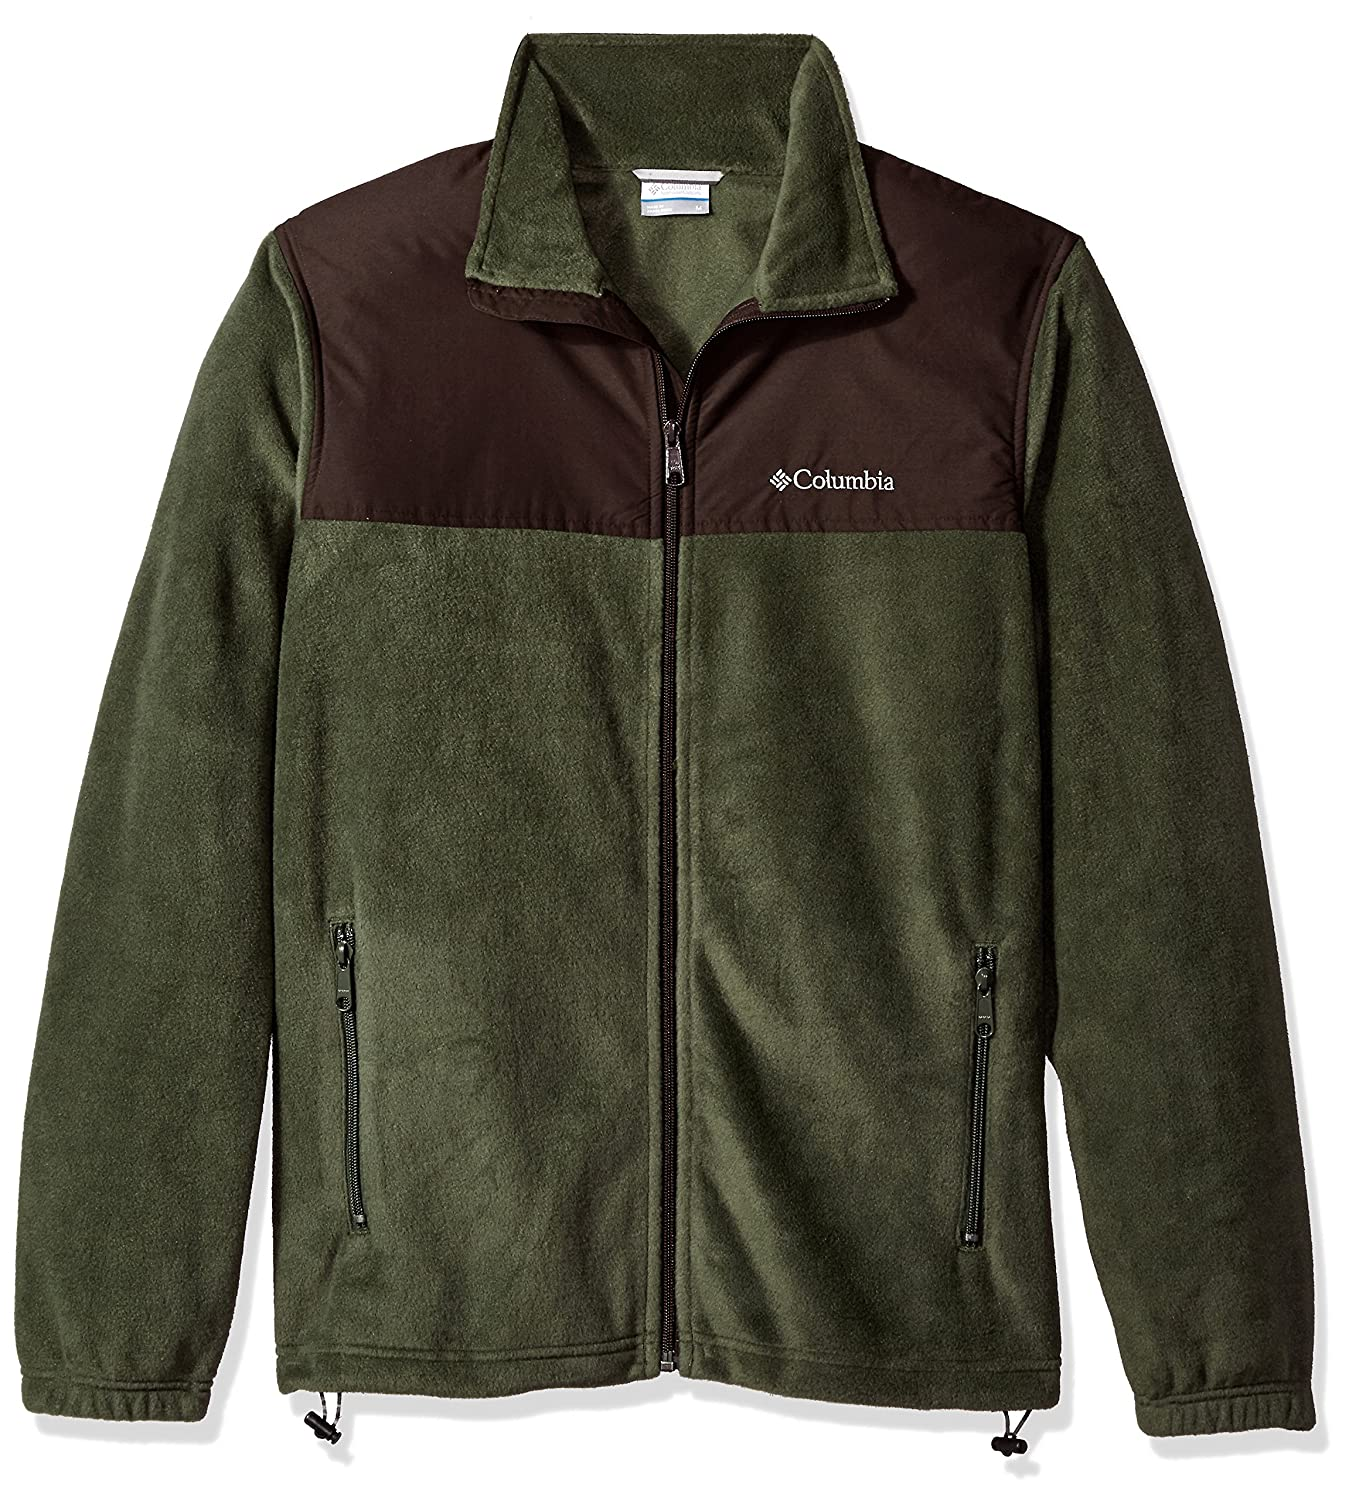 Columbia Men's Steens Mountain Full Zip Soft Fleece Vest Columbia Men's Sportswear 1552421